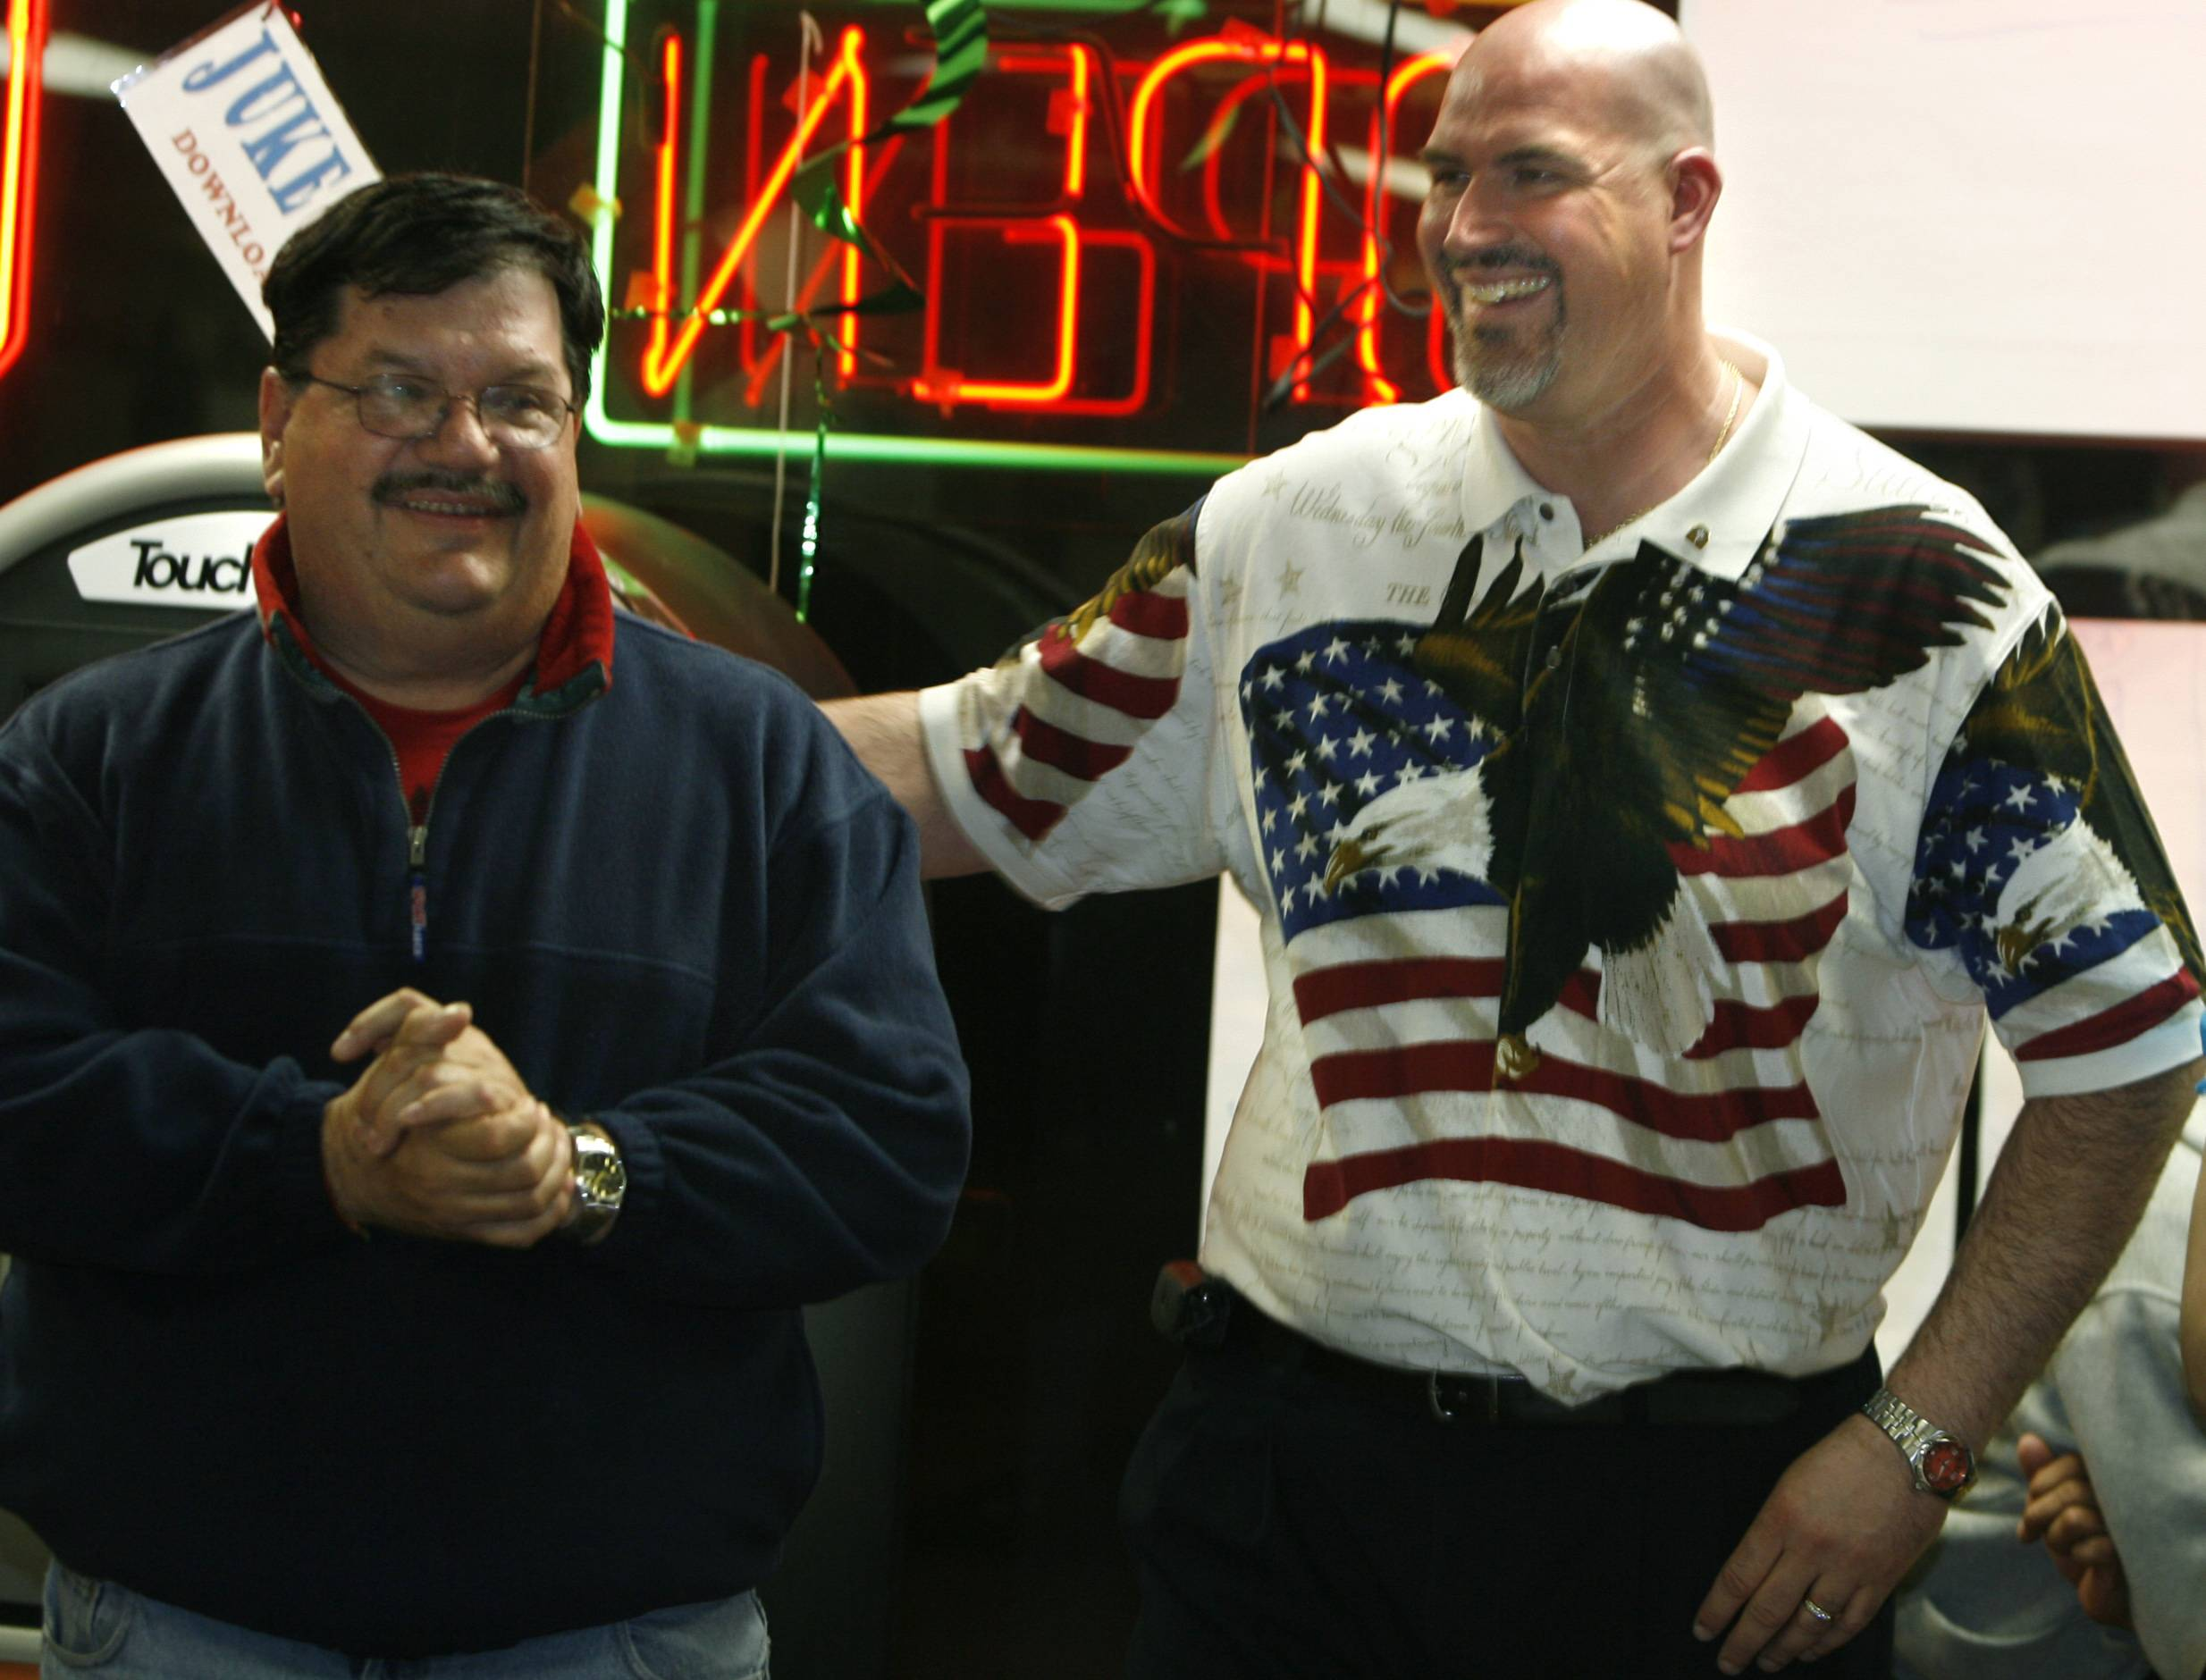 Hanover Park Village President Rod Craig, left, and Trustee Ed Zimel shared a ticket, and a victory celebration, in 2009.